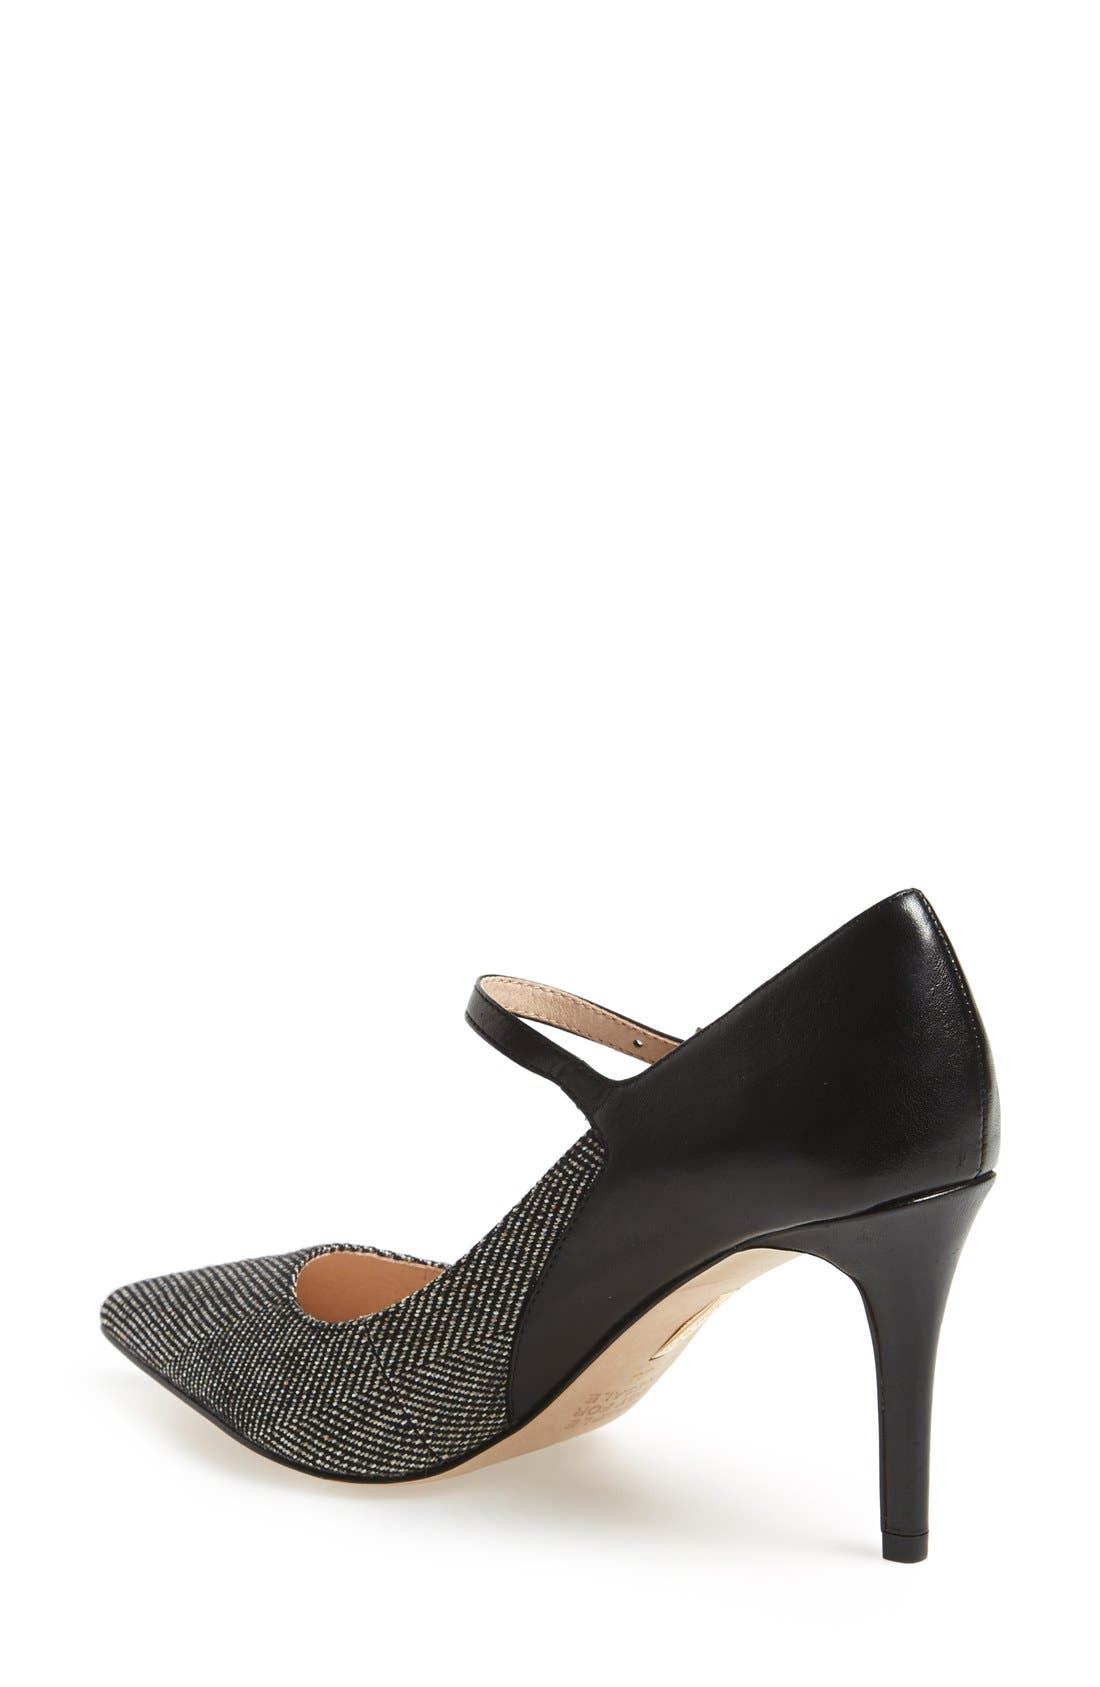 'Ione' Mary Jane Pump,                             Alternate thumbnail 3, color,                             020